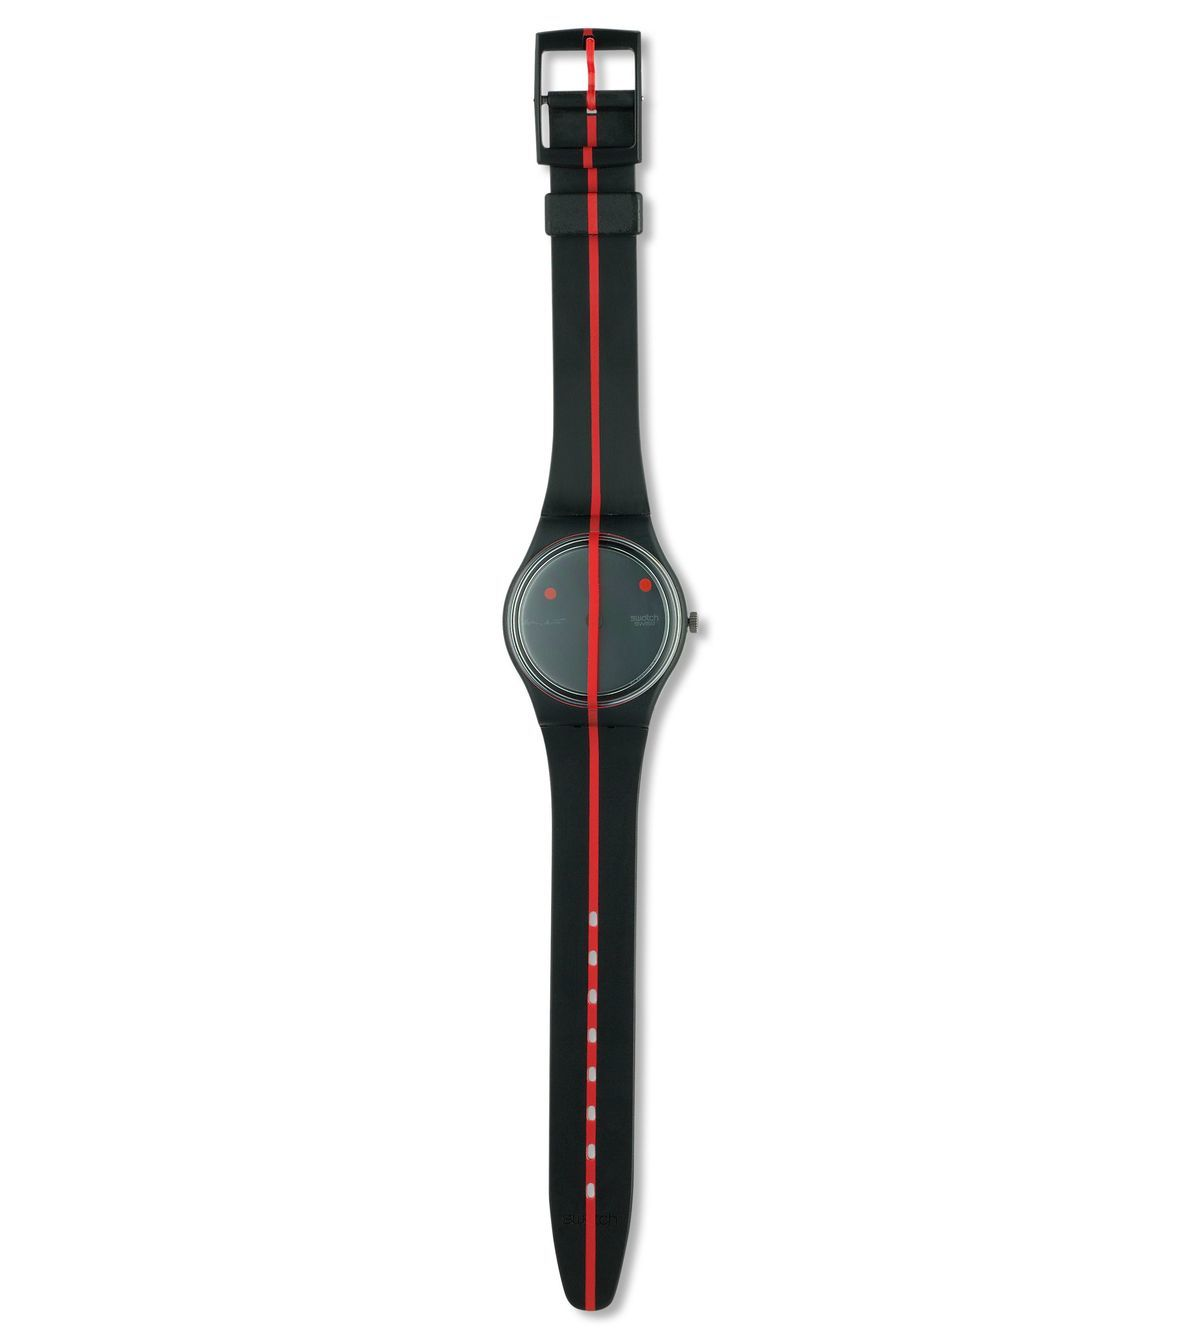 360 ROUGE SUR BLACKOUT (GZ119) - Swatch® Malaysia